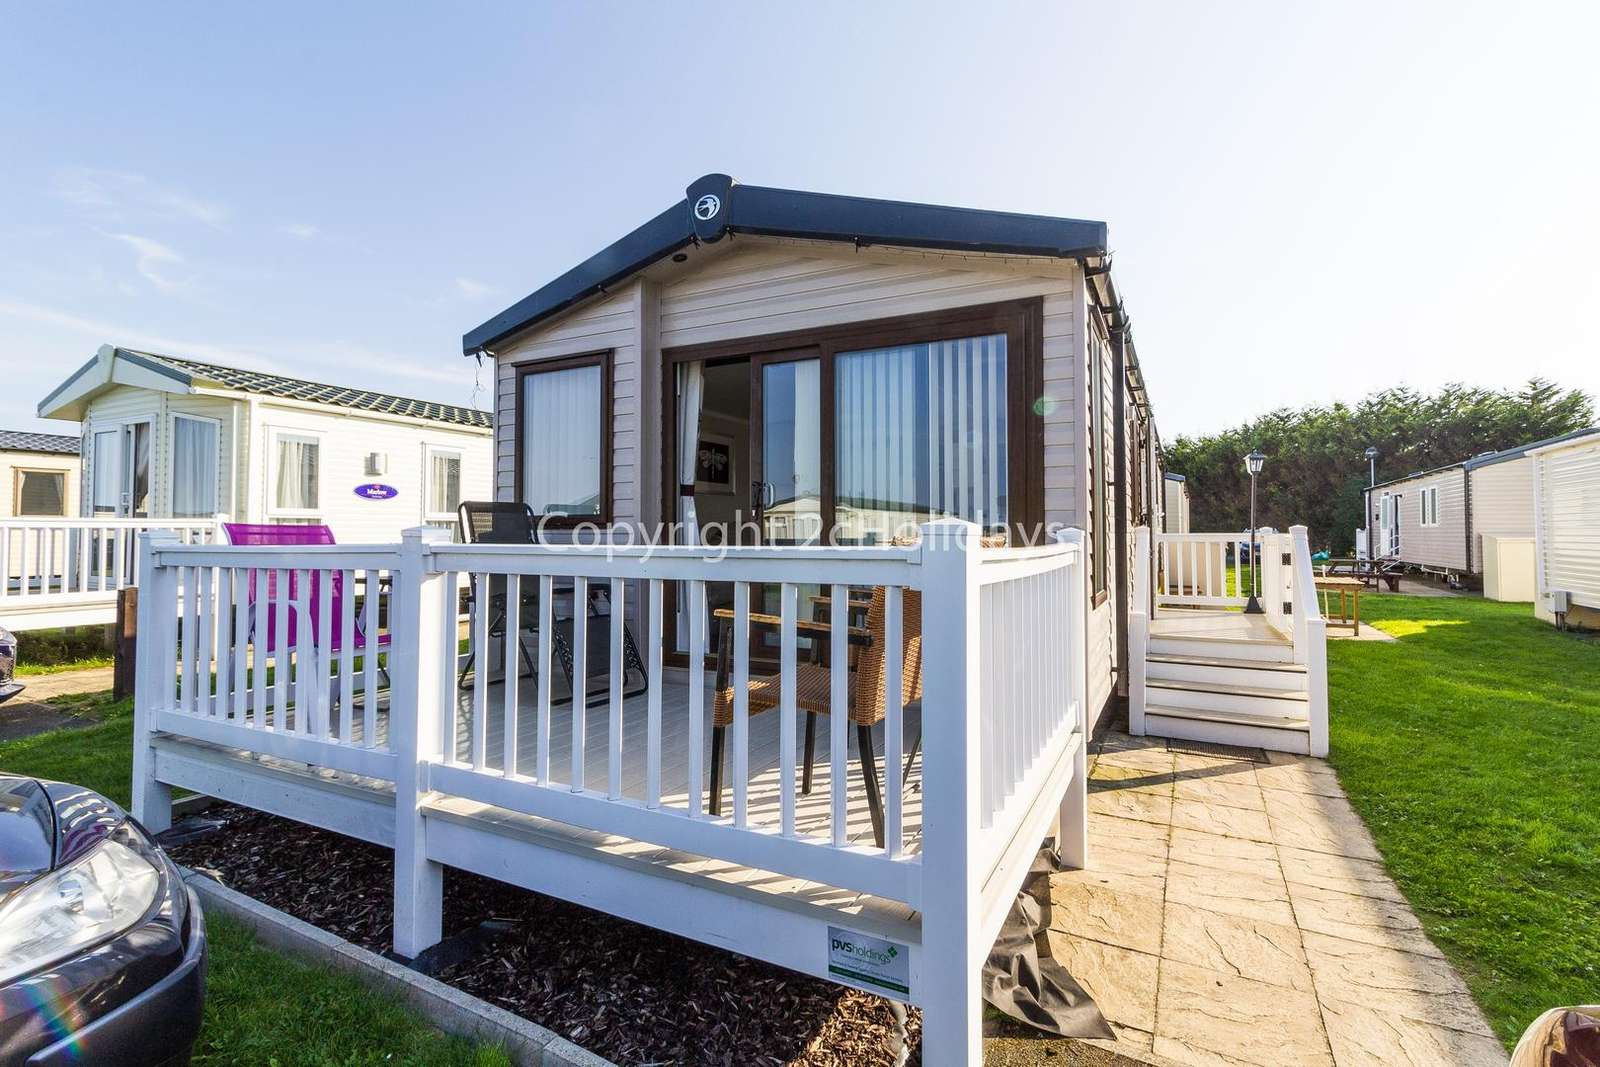 So many families have enjoyed a great break Caister Haven Holiday Park